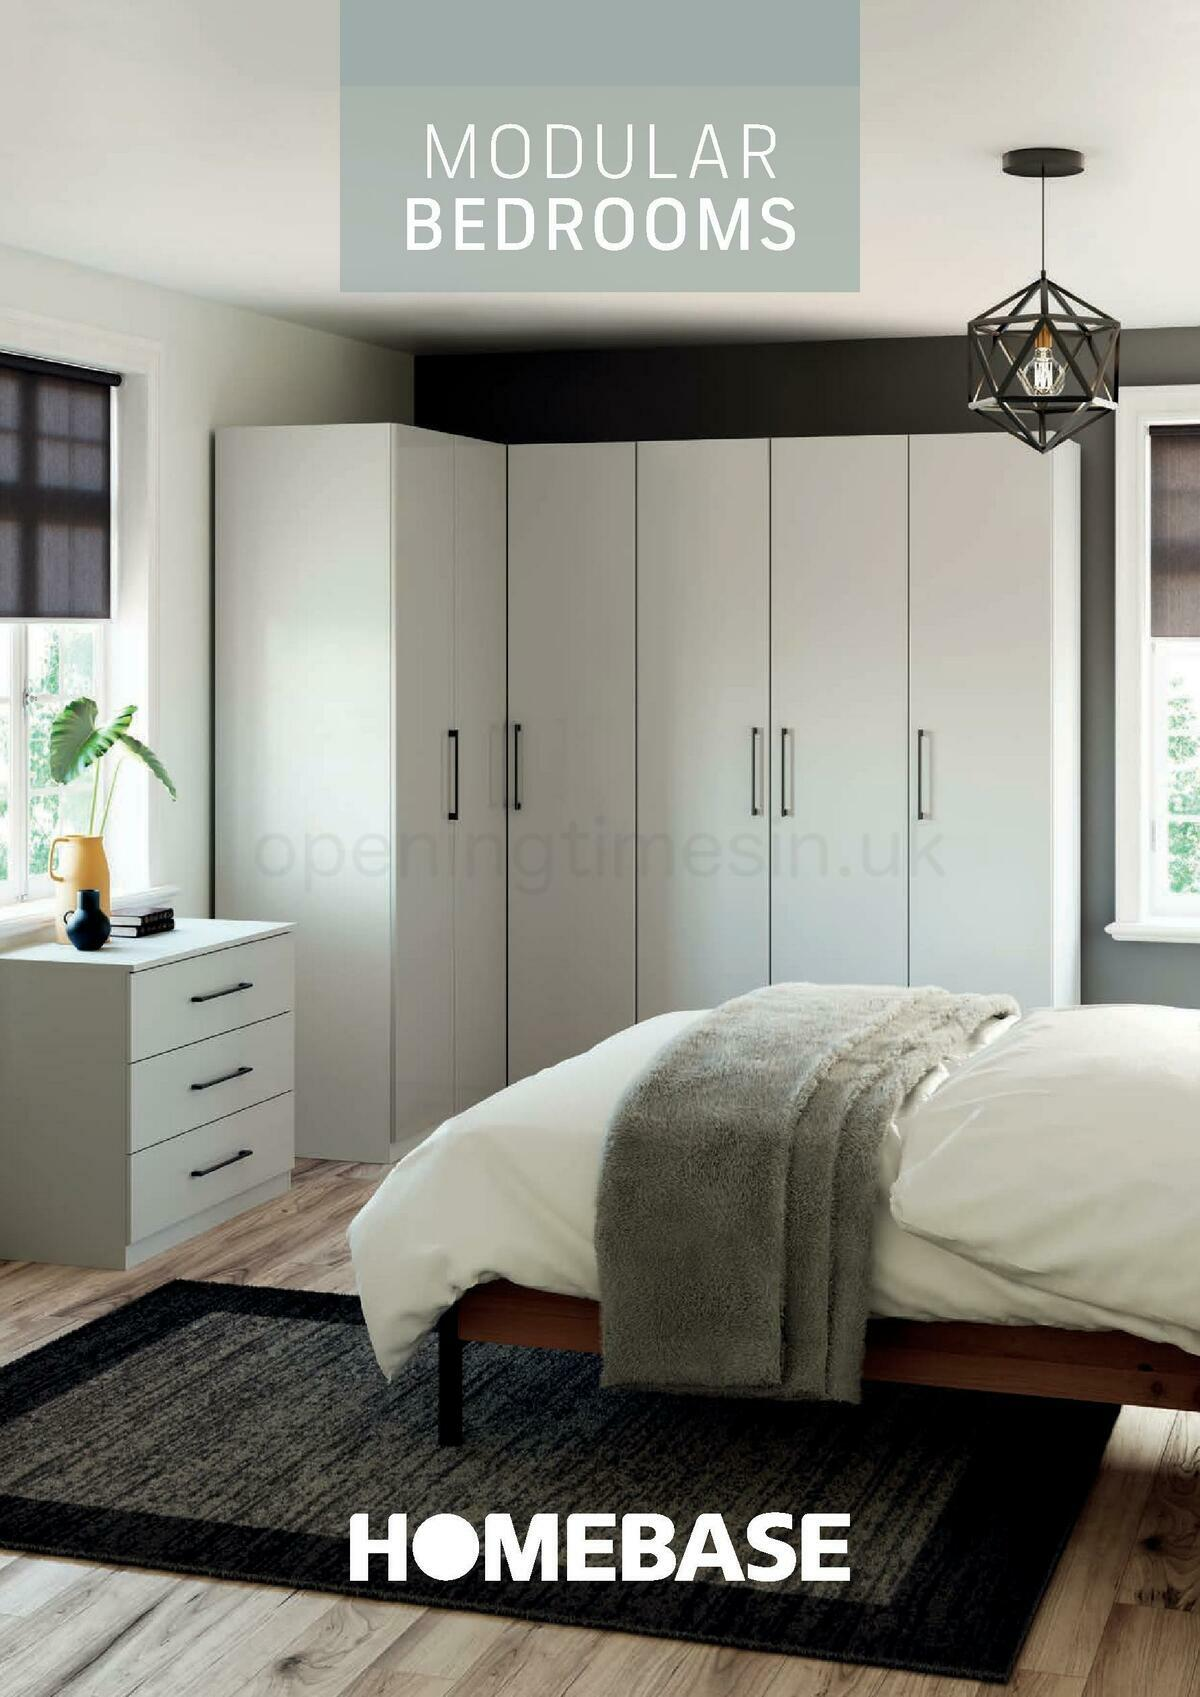 Homebase Modular Bedrooms Brochure Offers from March 1